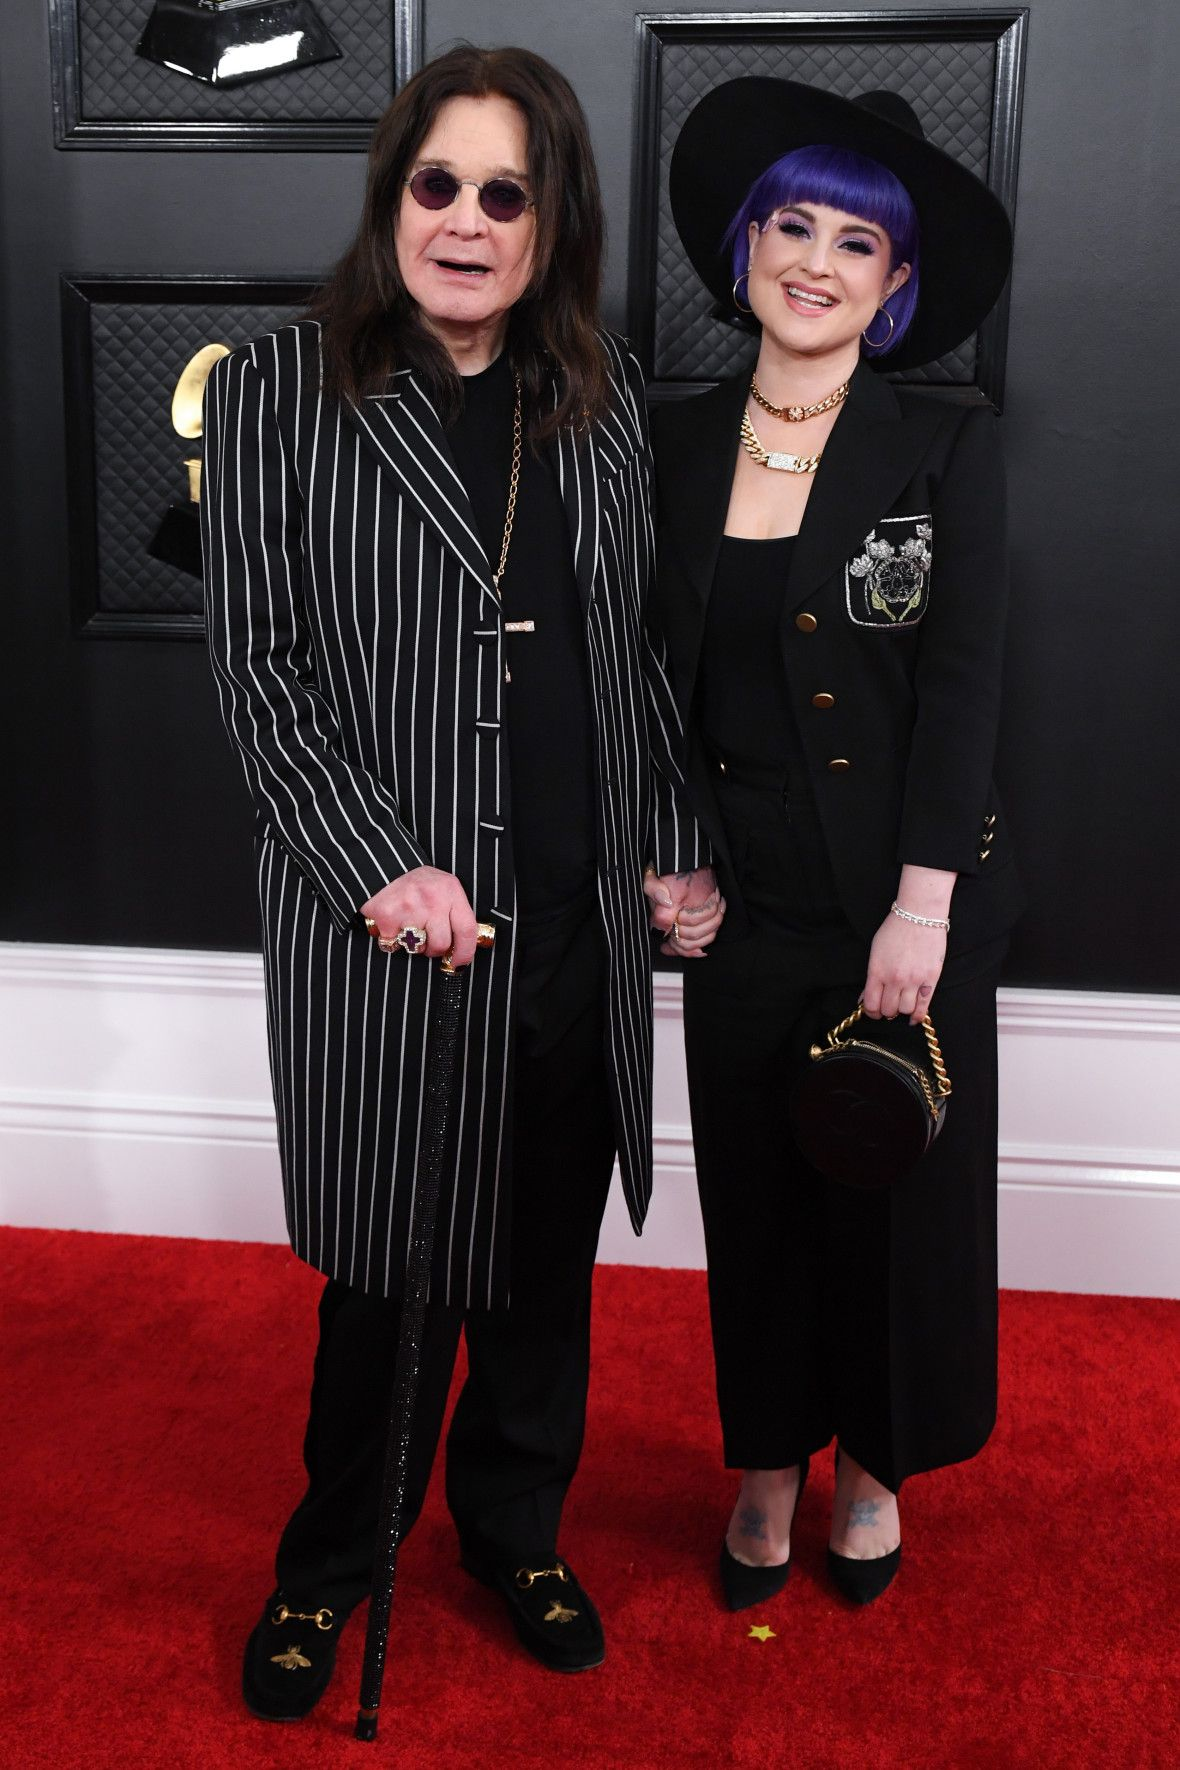 Ozzy Osbourne Looks Happy at 2020 Grammys After Parkinson ...Kelly Osbourne 2020 Diet